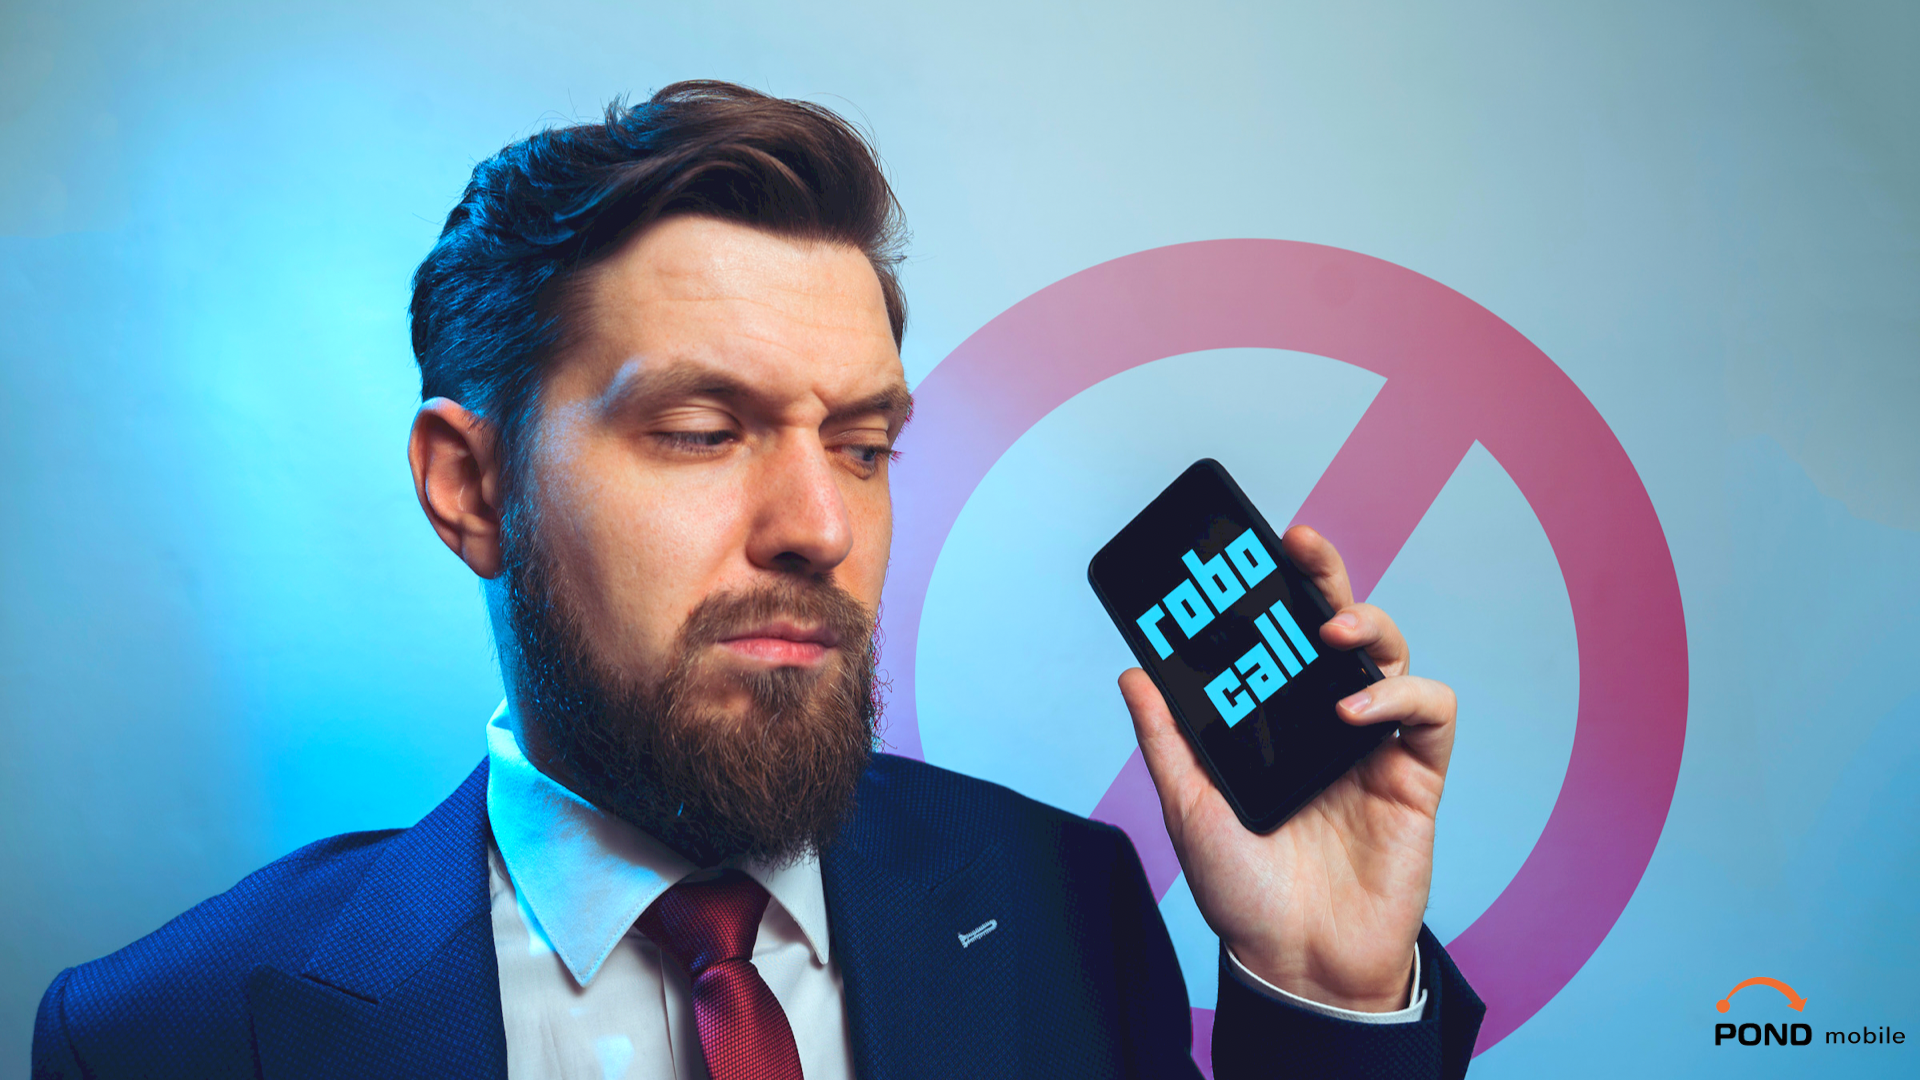 Read: The Truth About Spam Calls